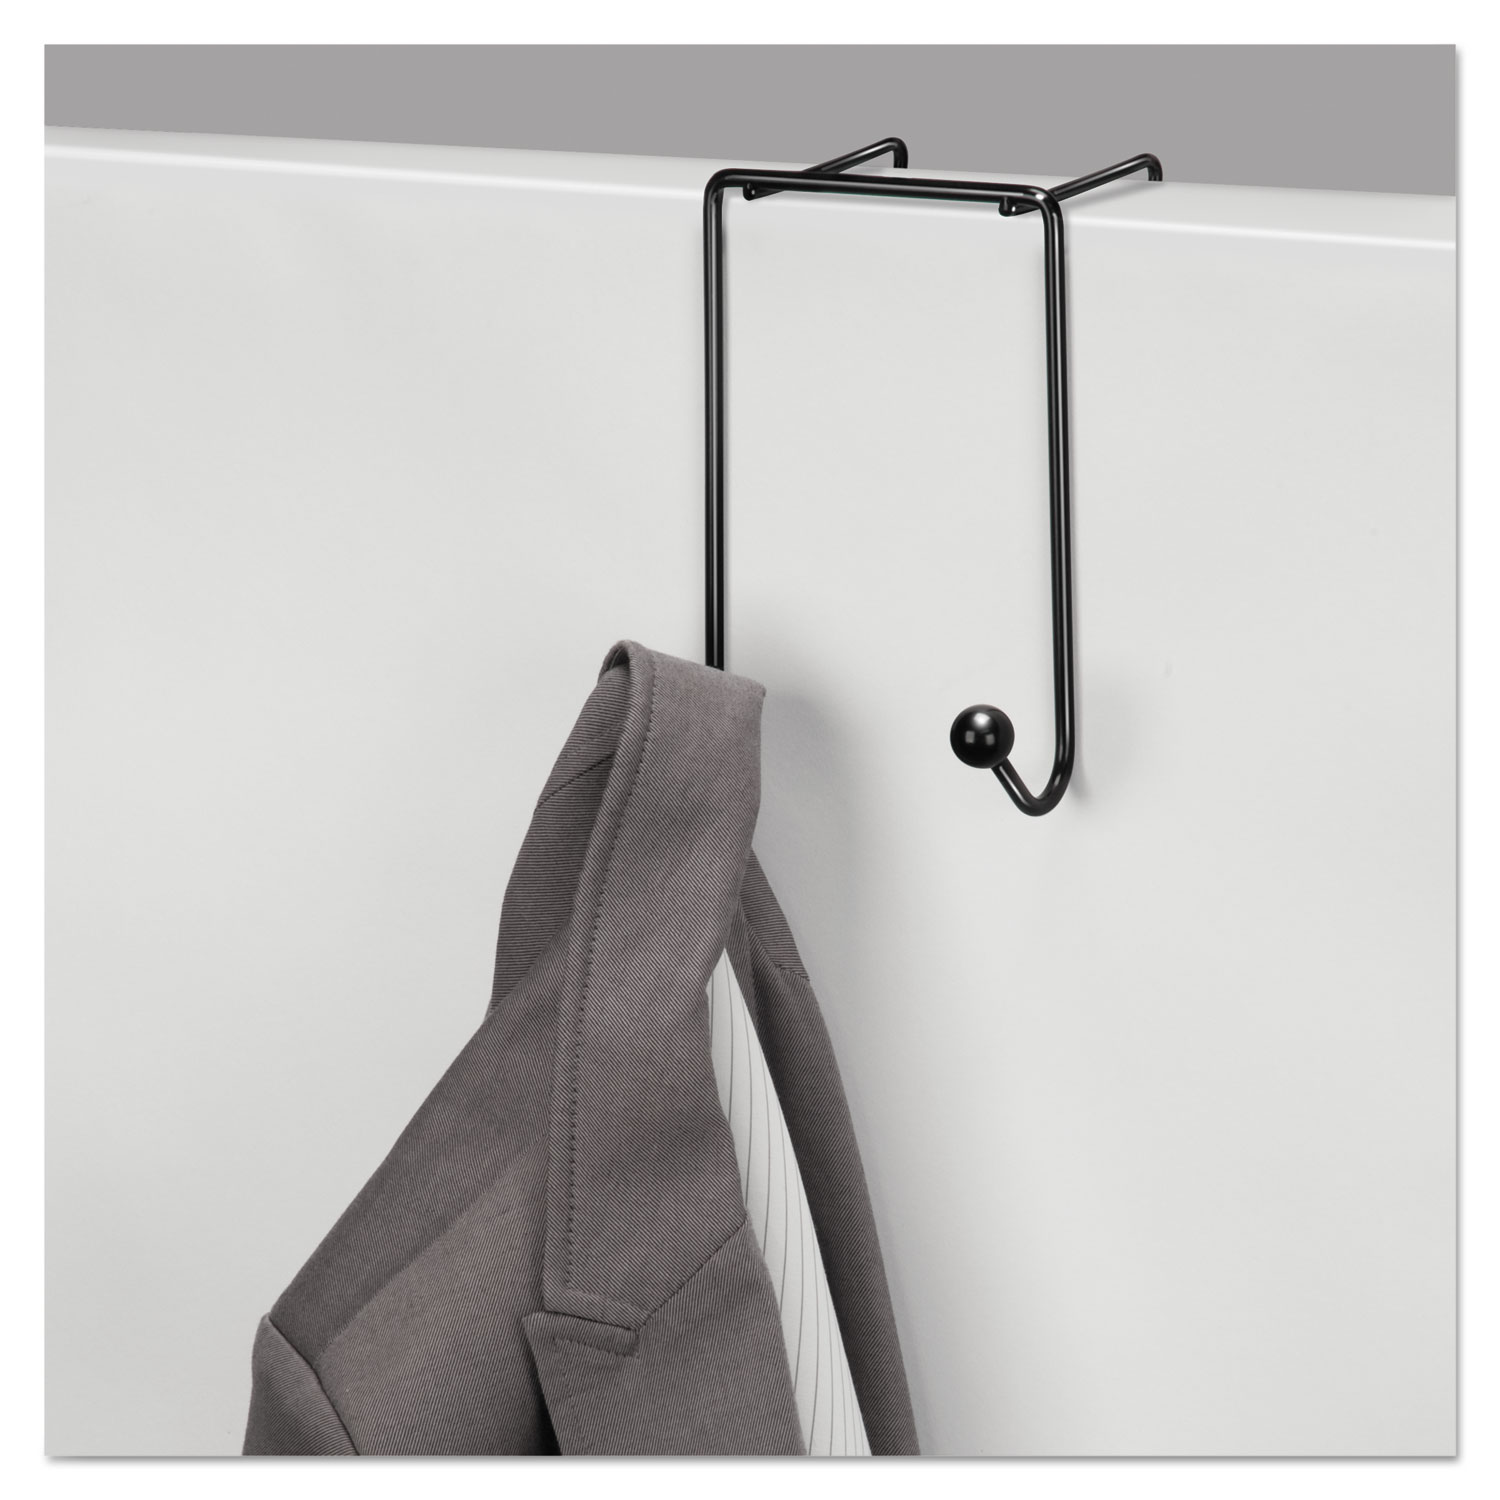 Over The Cubicle Coat Hook | Cubicle Coat Hook | Cubicle Picture Hangers